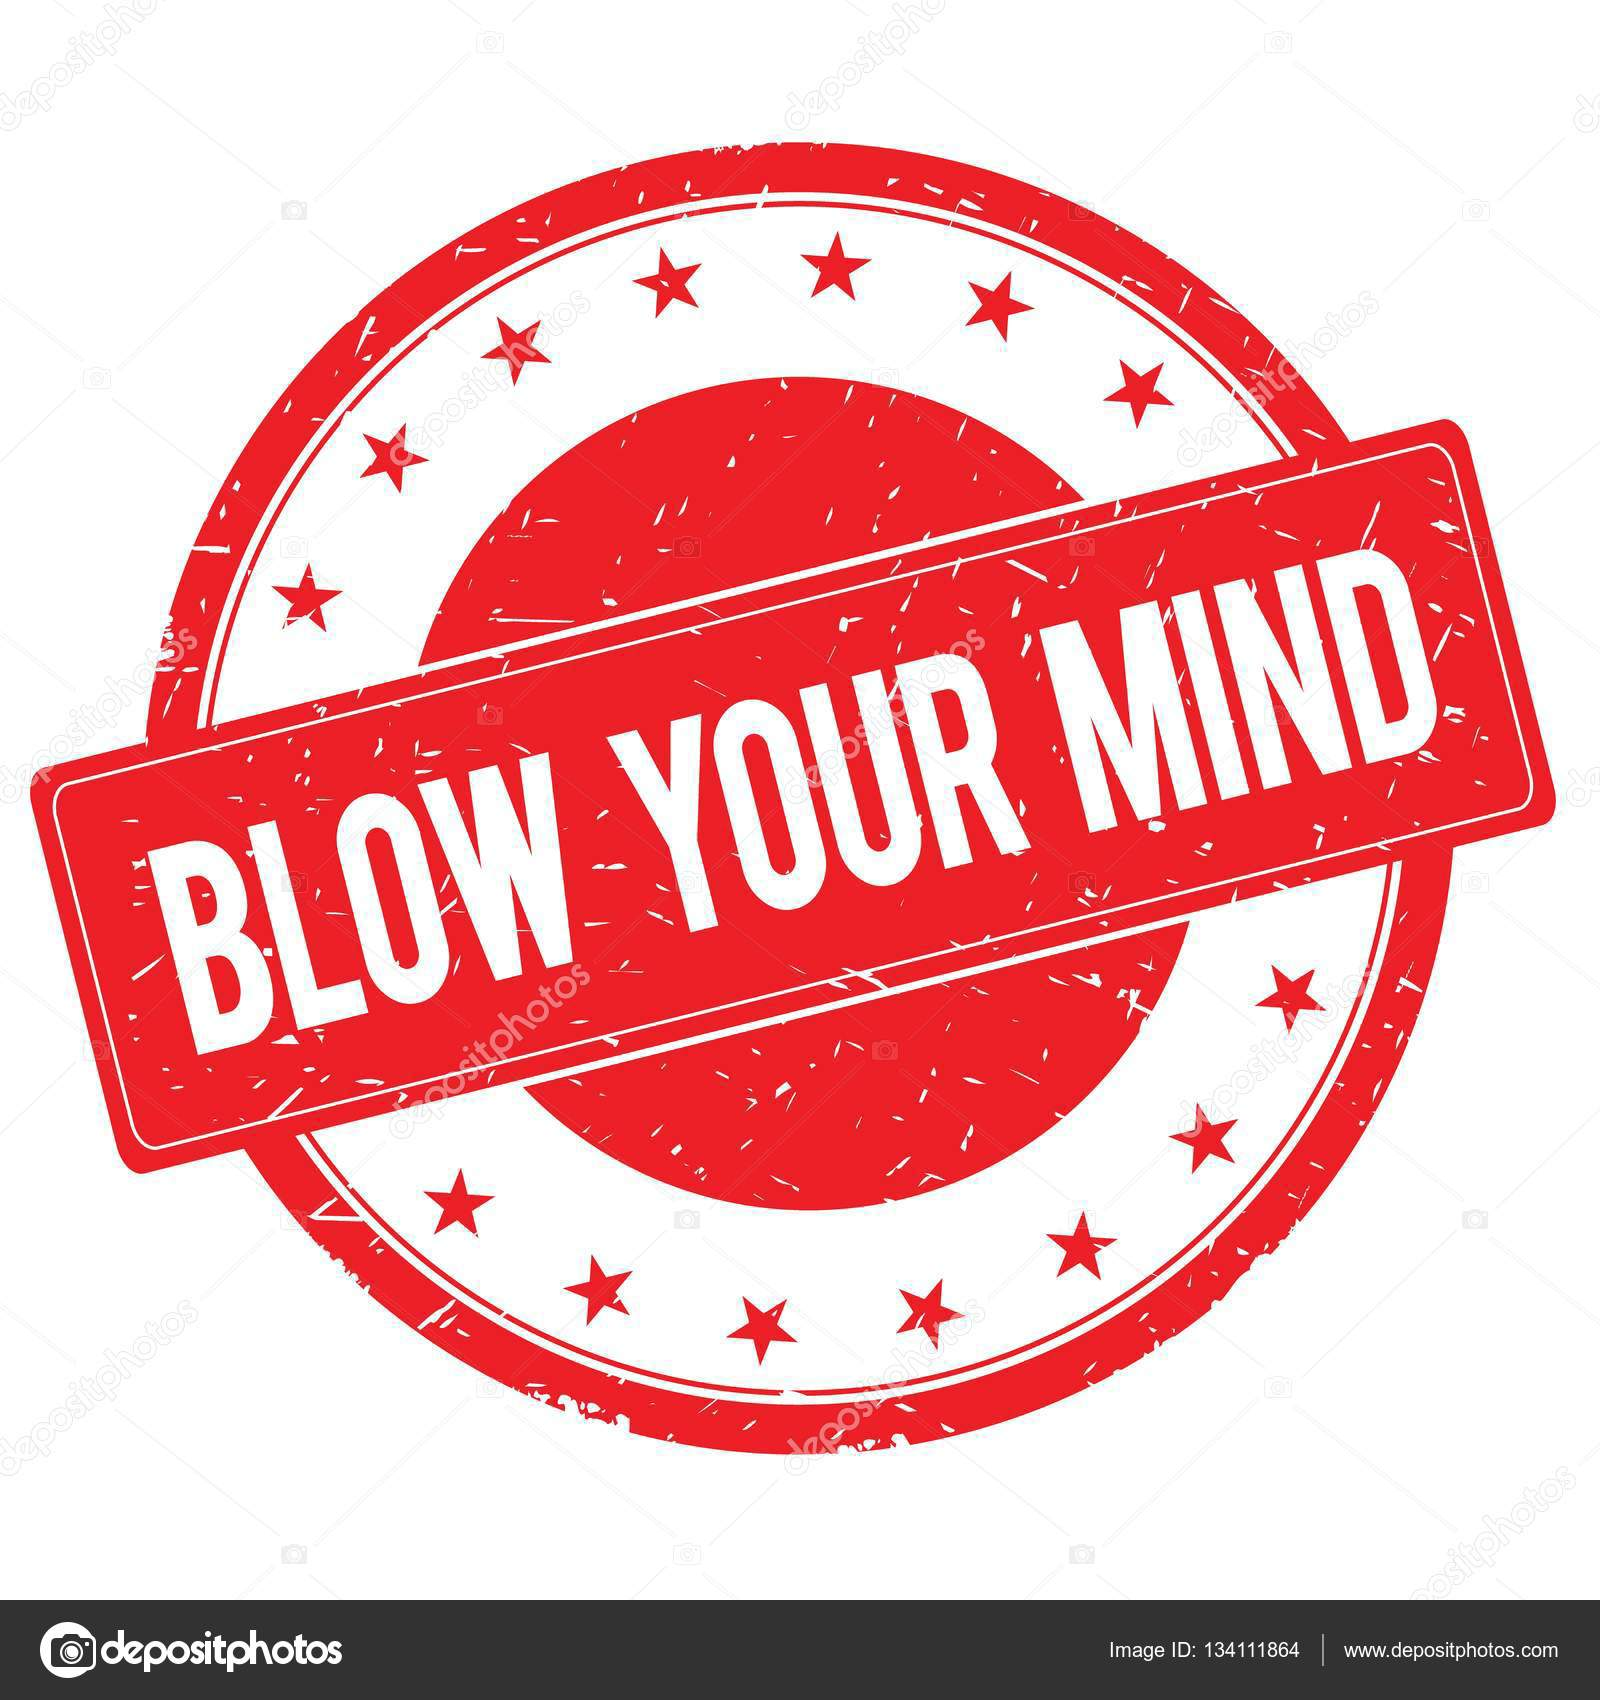 blow your mind download free